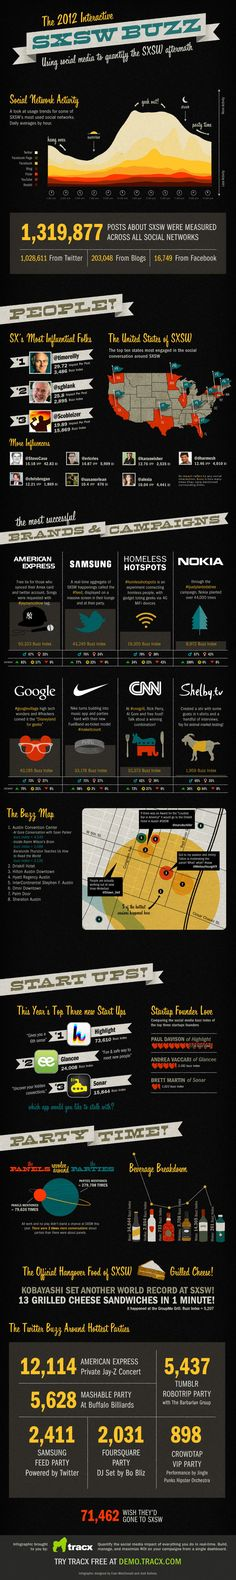 SXSW Interactive 2012 buzz infographic by Tracx